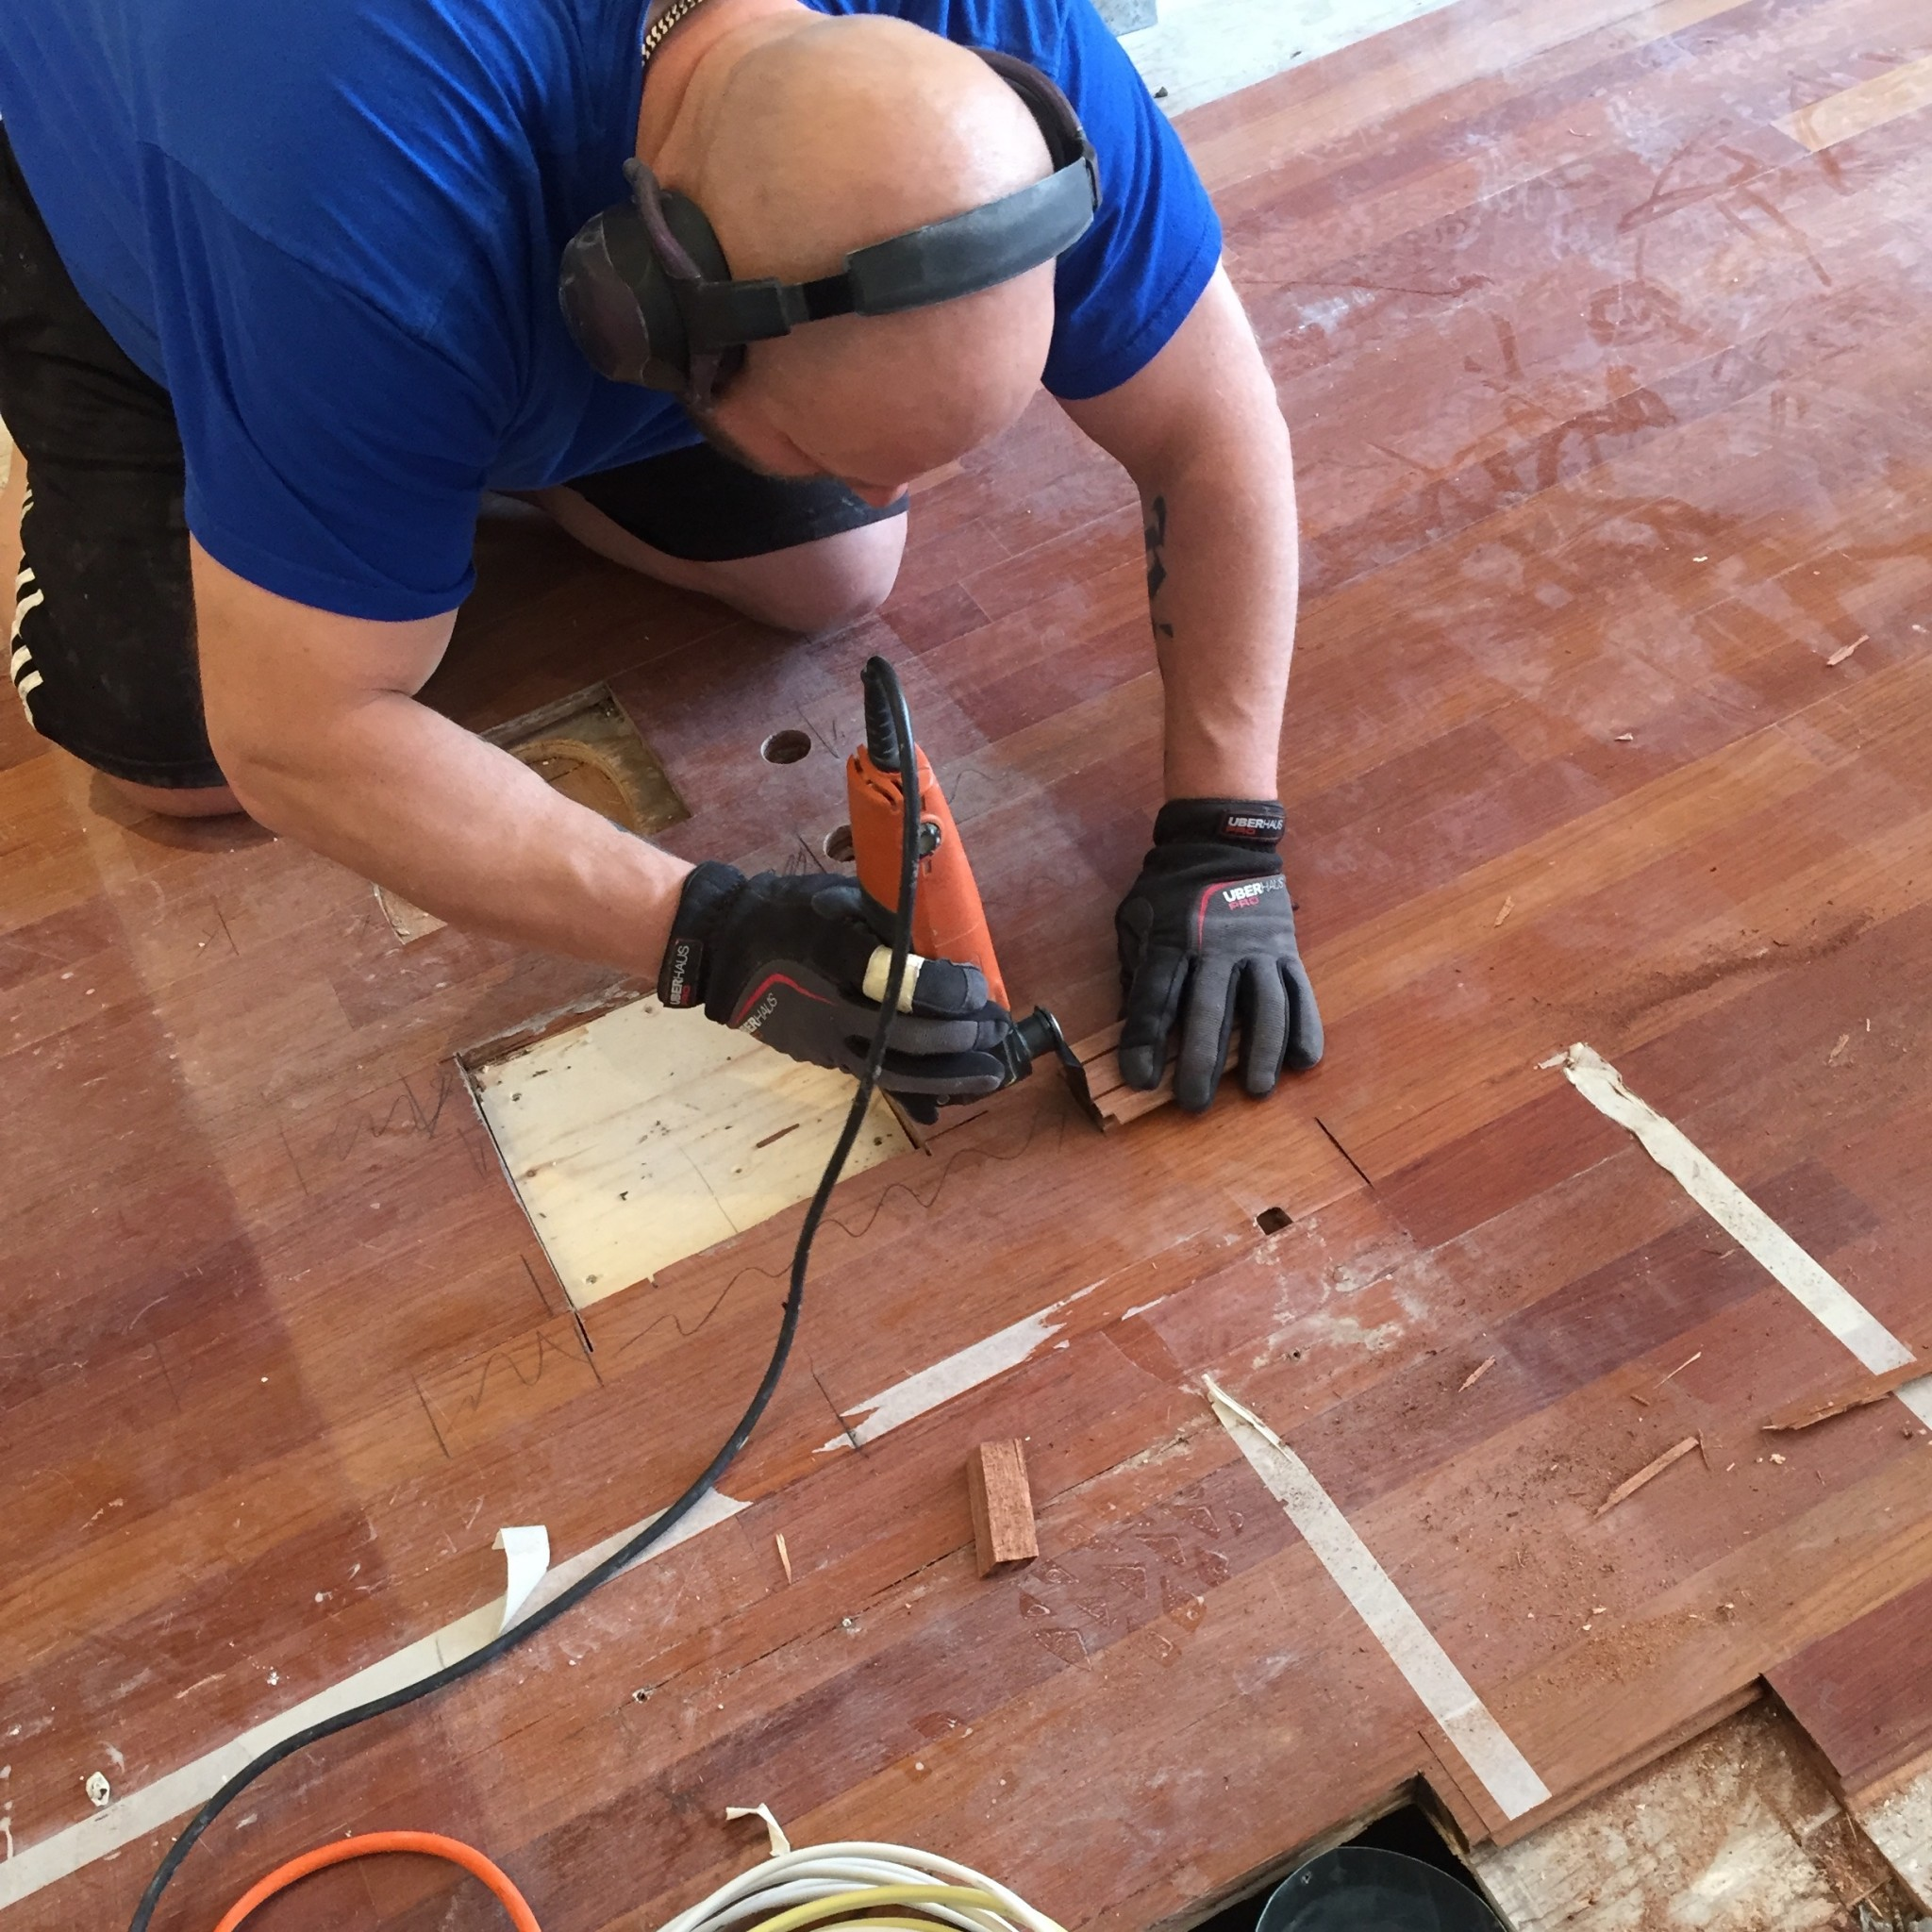 Man repairing a wooden floor with a power tool.